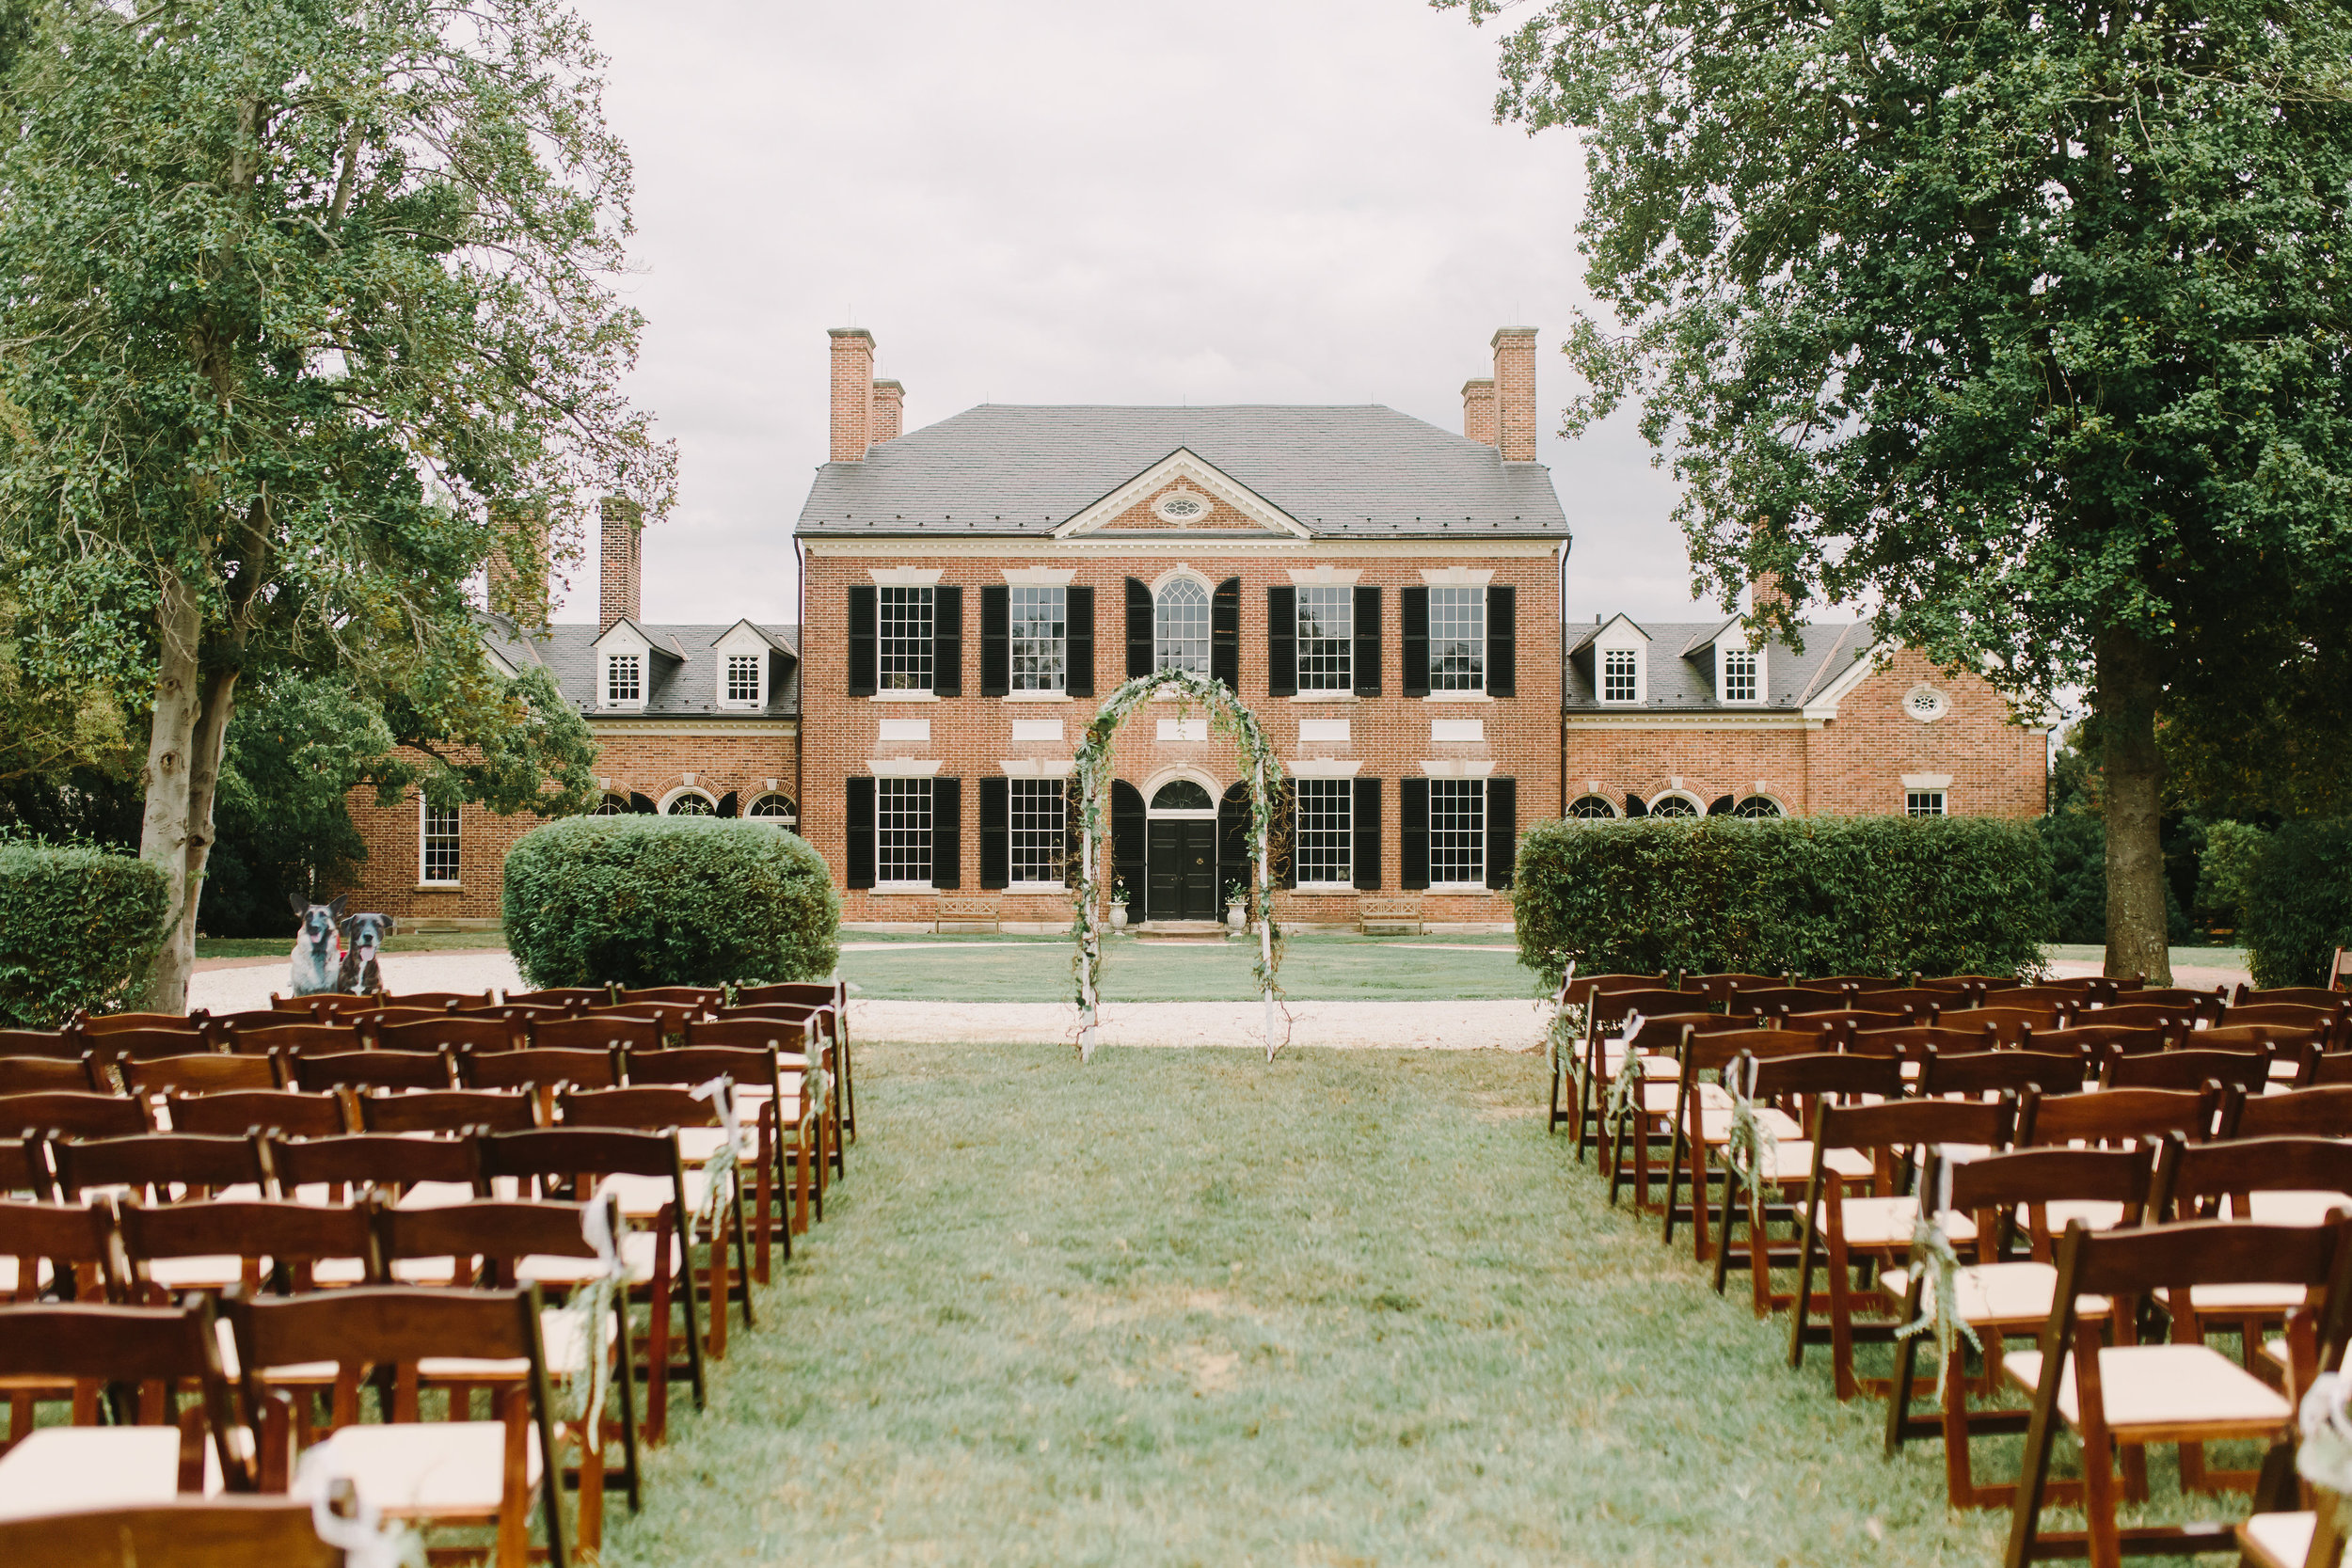 alexandria-virginia-film-wedding-photographer-woodlawn-plantation-lauren-and-cody-210.jpg